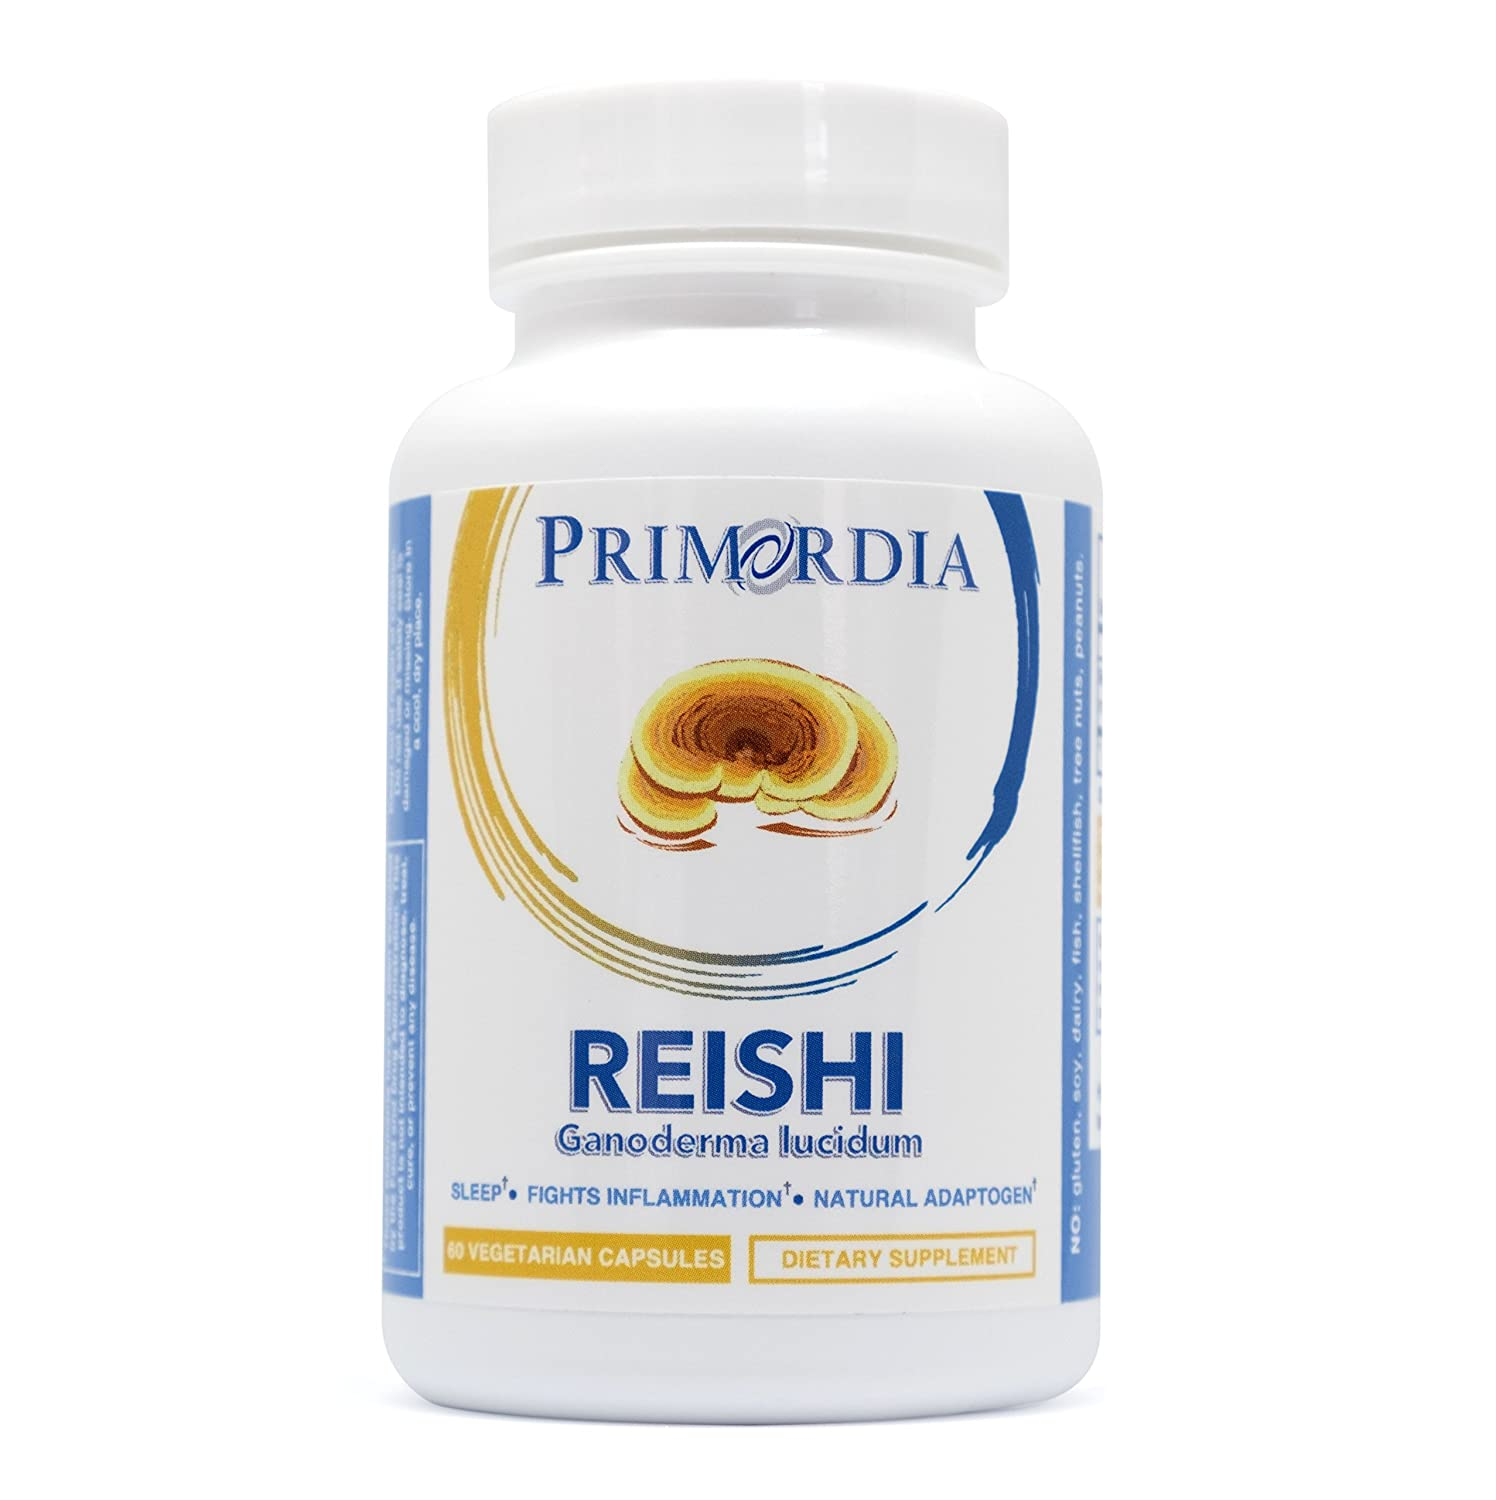 Primordia Reishi Mushroom Capsules Promotes Calm and Restful Sleep, Anti-Aging, Fights Inflammation Non-GMO, Allergen Free, Pure Reishi Mushroom Ganoderma lucidum 60ct.